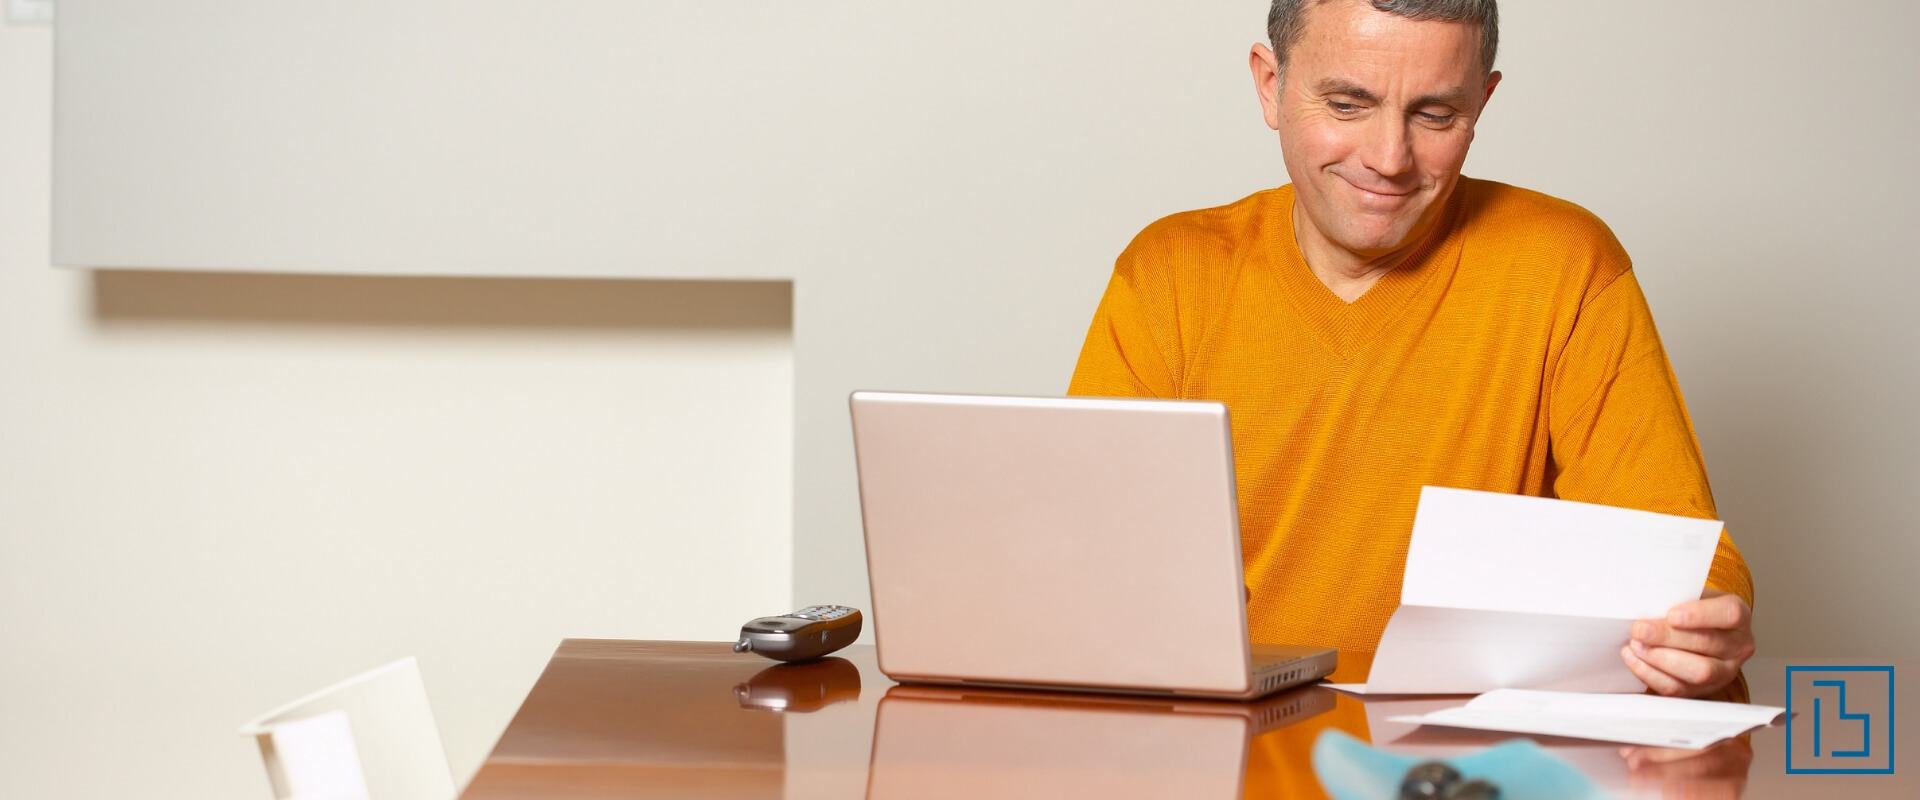 Man looking at letter and laptop - Beachworks LLC